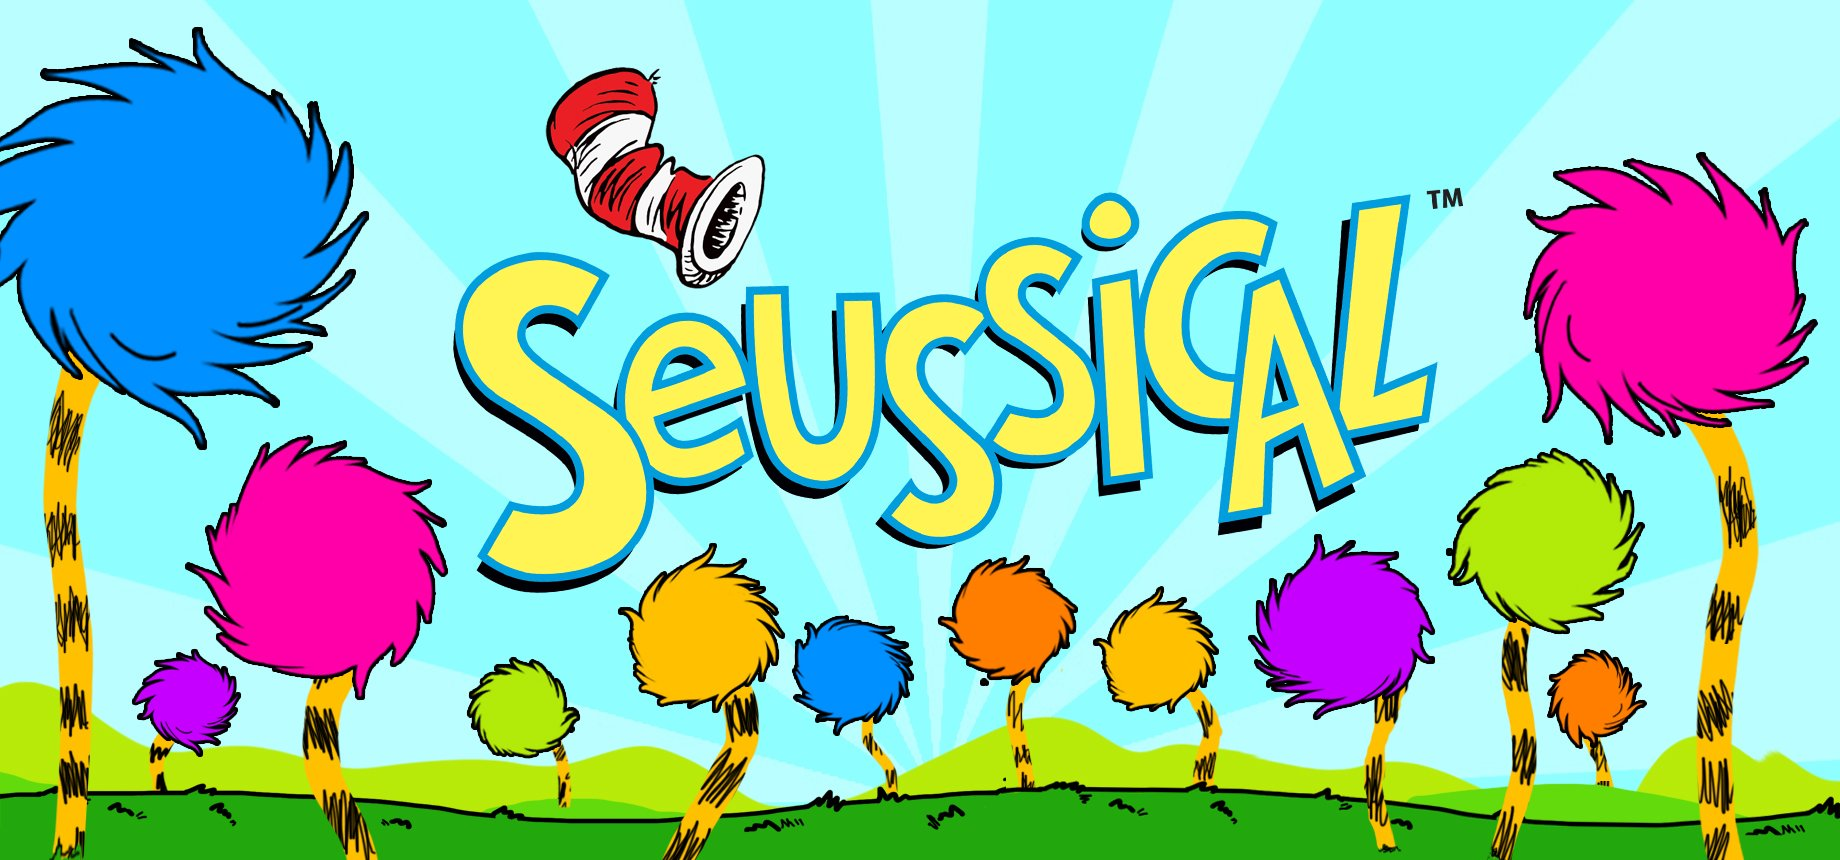 SEUSSICAL at Actors Conservatory Theater